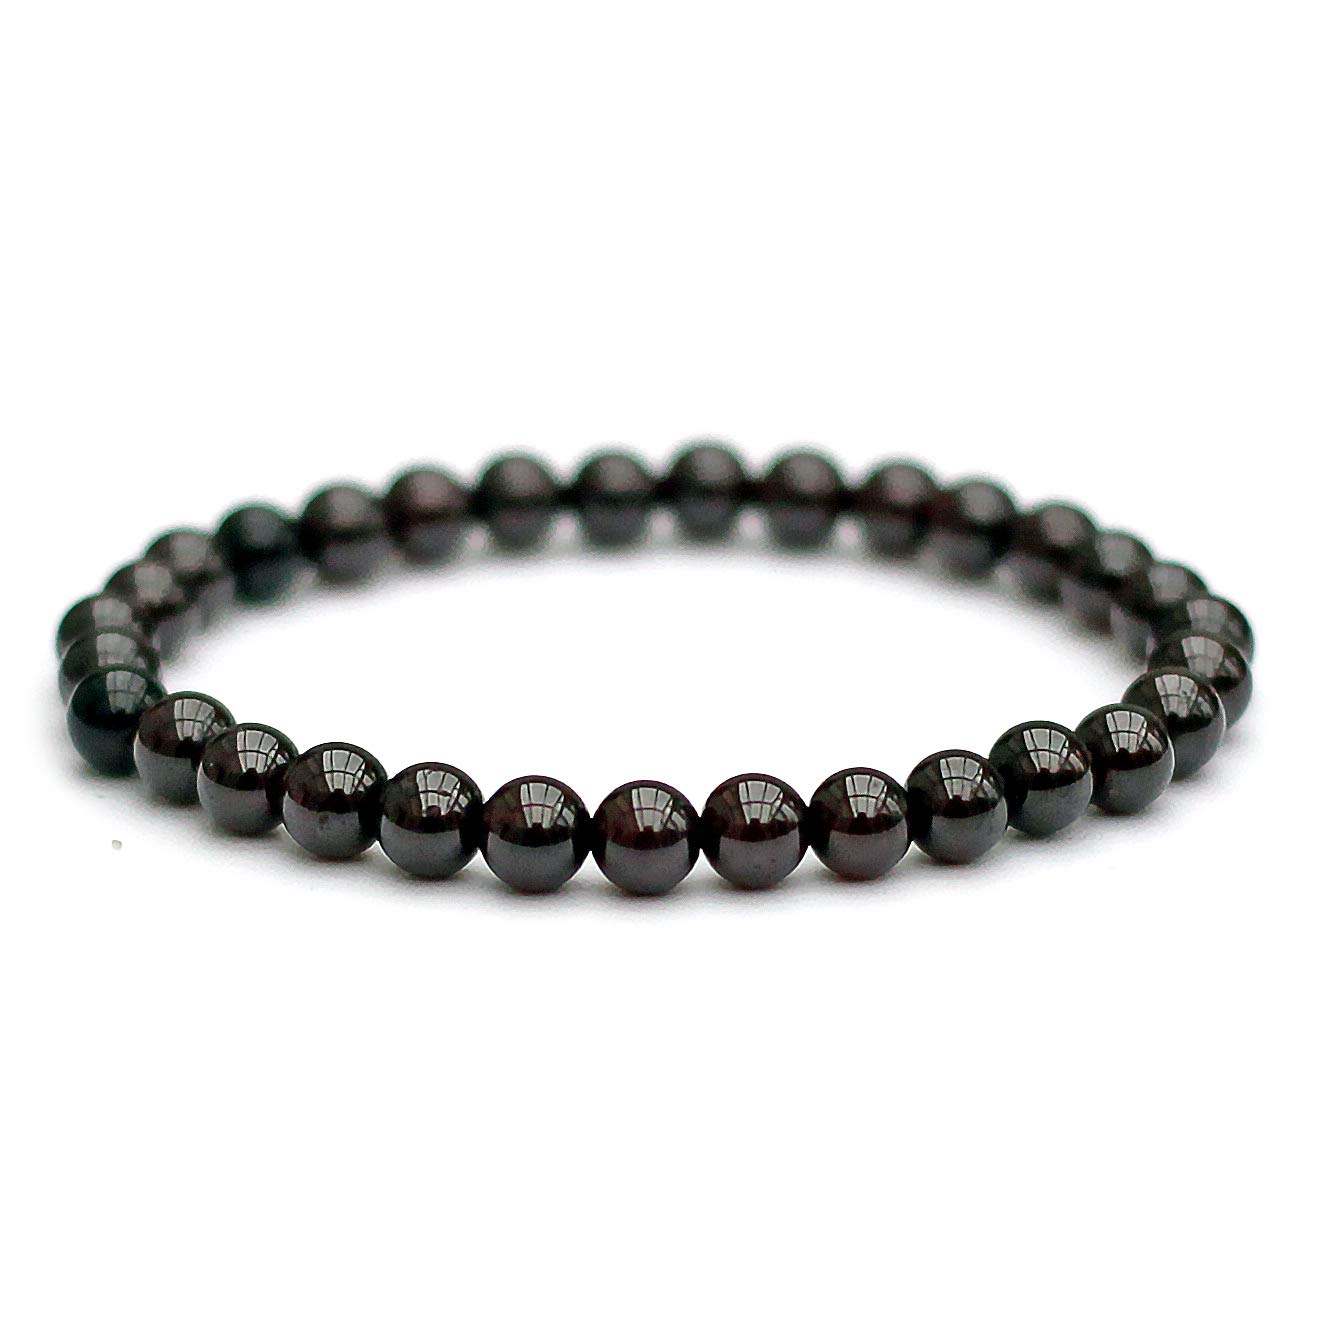 Black Tourmaline Bracelet, 6mm Genuine Semi-Precious Gemstones, Unisex Stretch Fit (16.5cm)